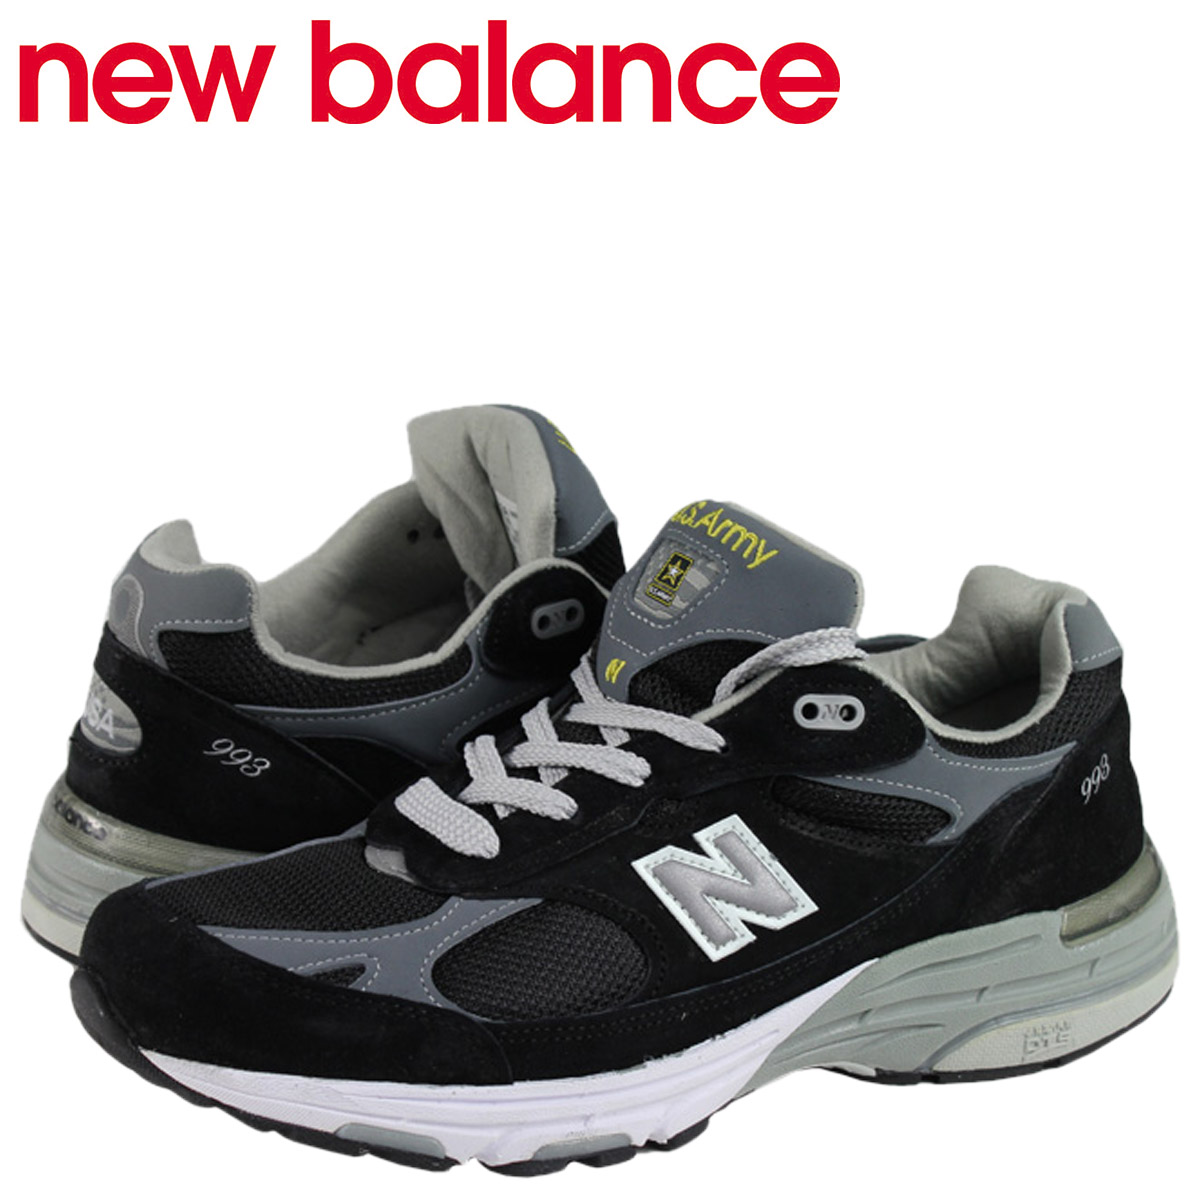 new styles 73fd0 6696c New Balance new balance women sneakers MILITARY PACK #WR993ARM black black  2A Wise leather shoes military pack army US ARMY MADE IN USA Lady's men